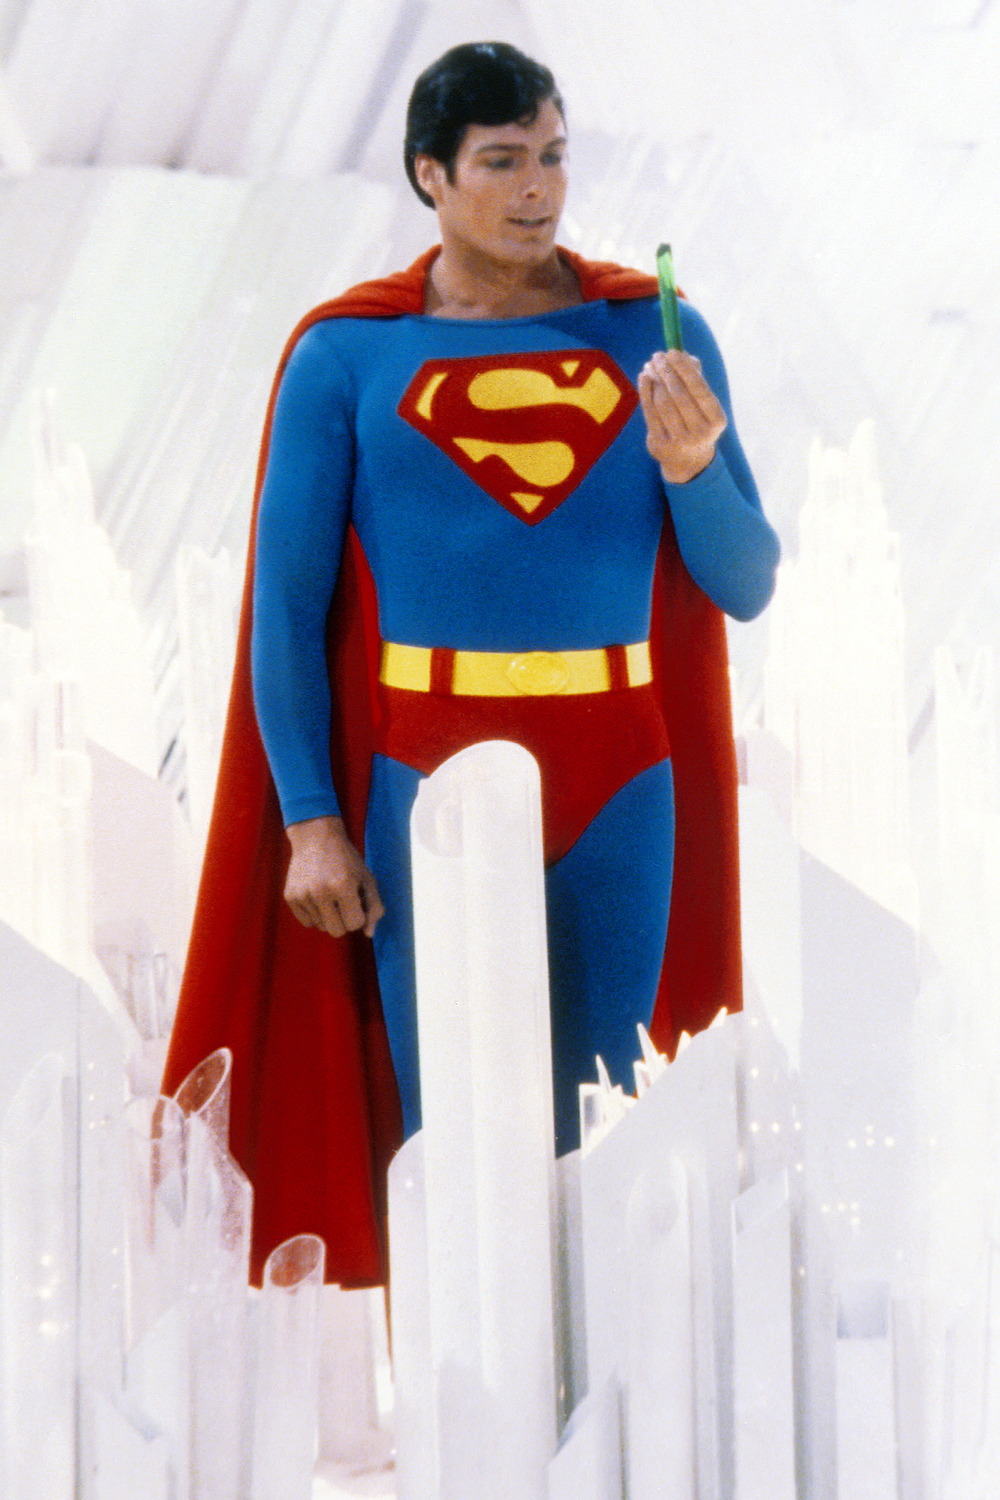 Superman, played by American actor Christopher Reeve (1952 - 2004), holds a green crystal at the Fortress of Solitude, in a promotional still from 'Superman', directed by Richard Donner, 1978.